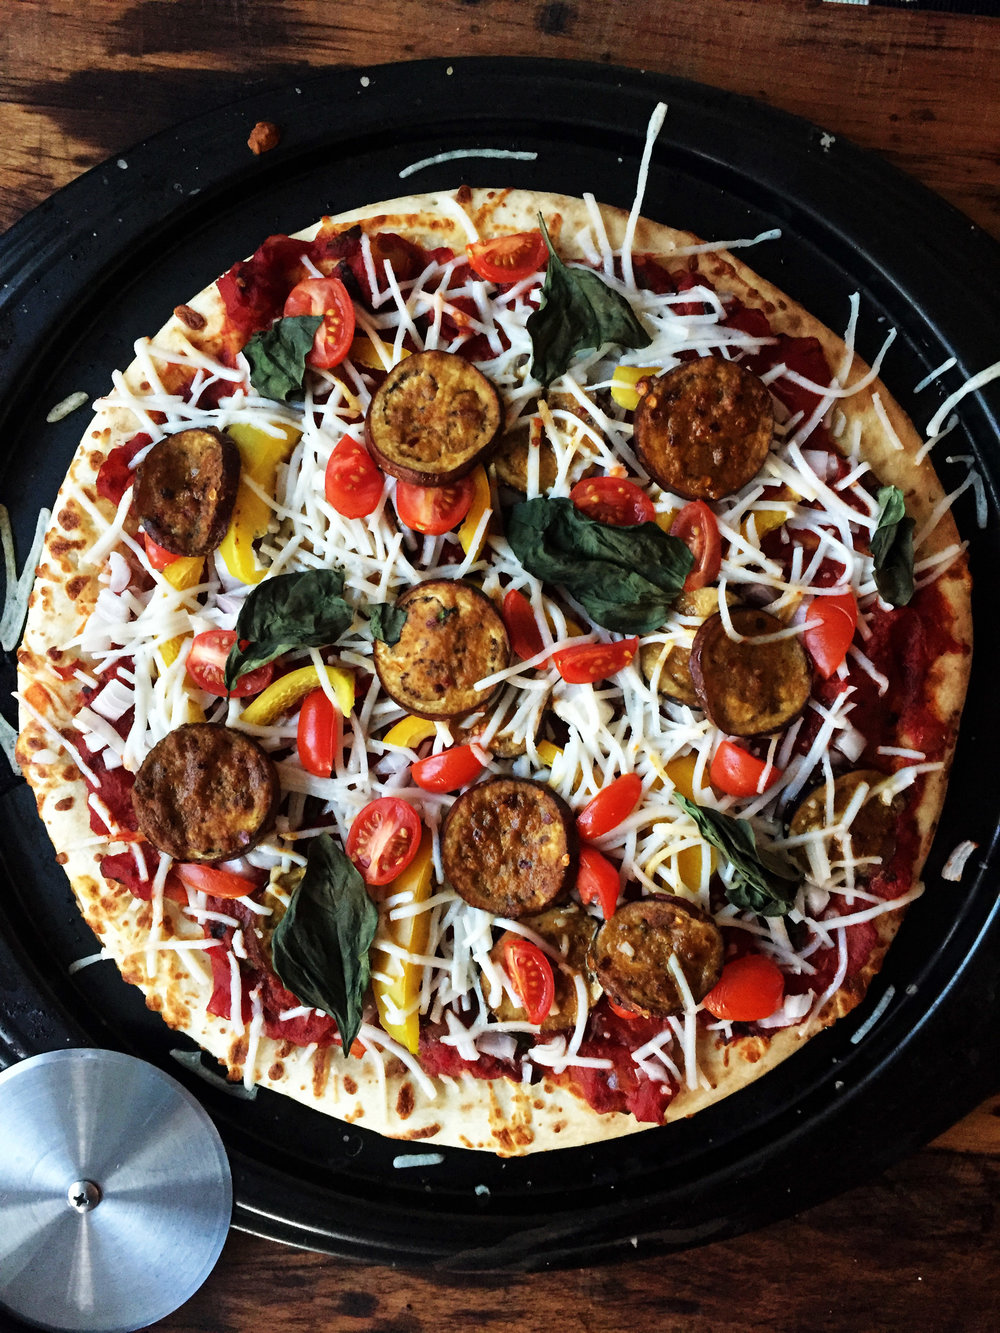 9. Place the pizza into the oven at 450F for 9-10 minutes until starts to crisp on the edges and slice into pieces.